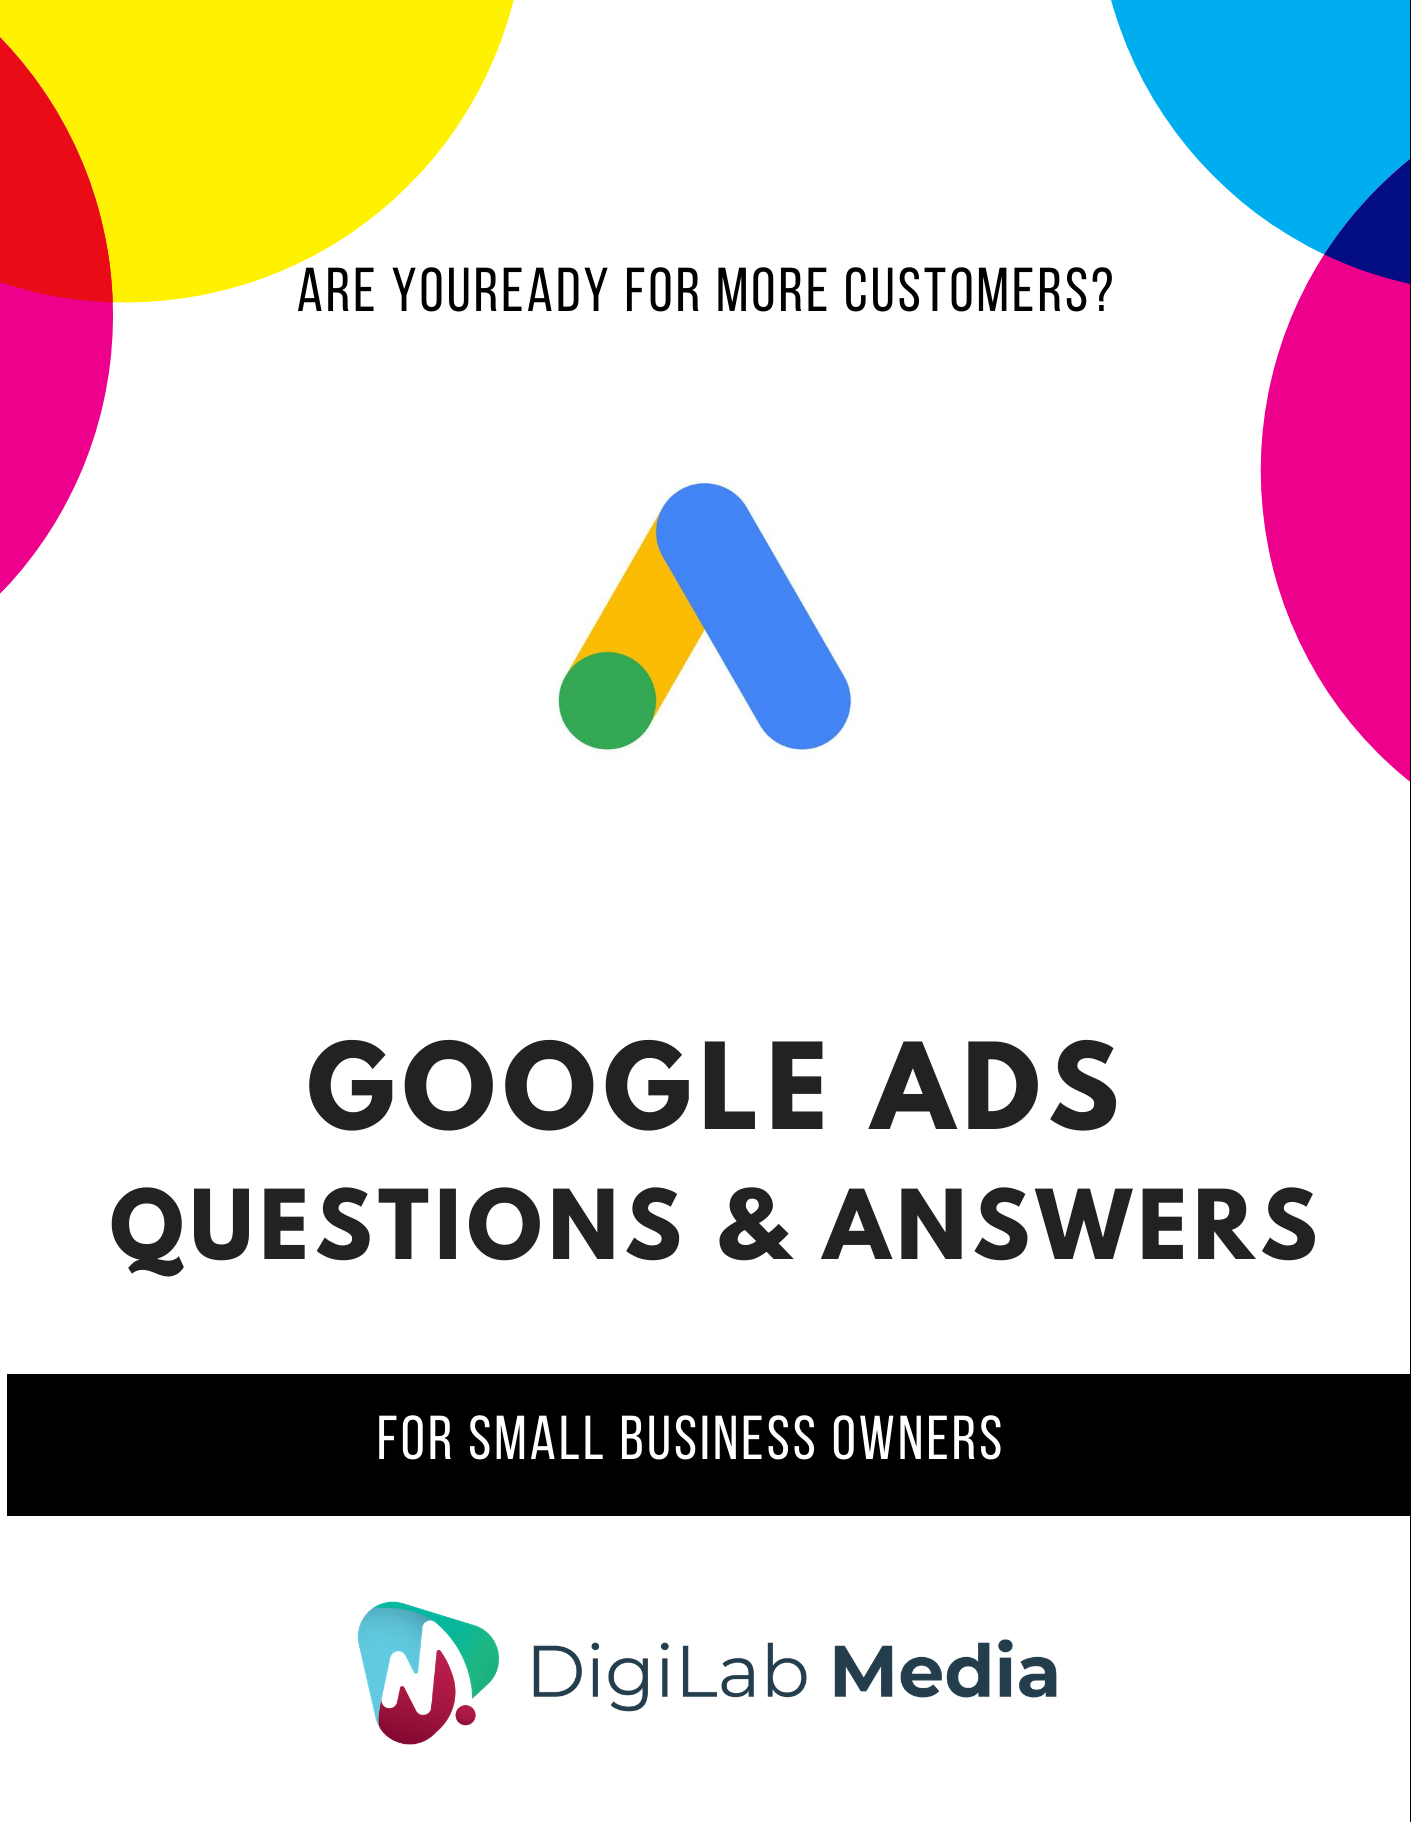 Google Ads Questions & Answers (1)